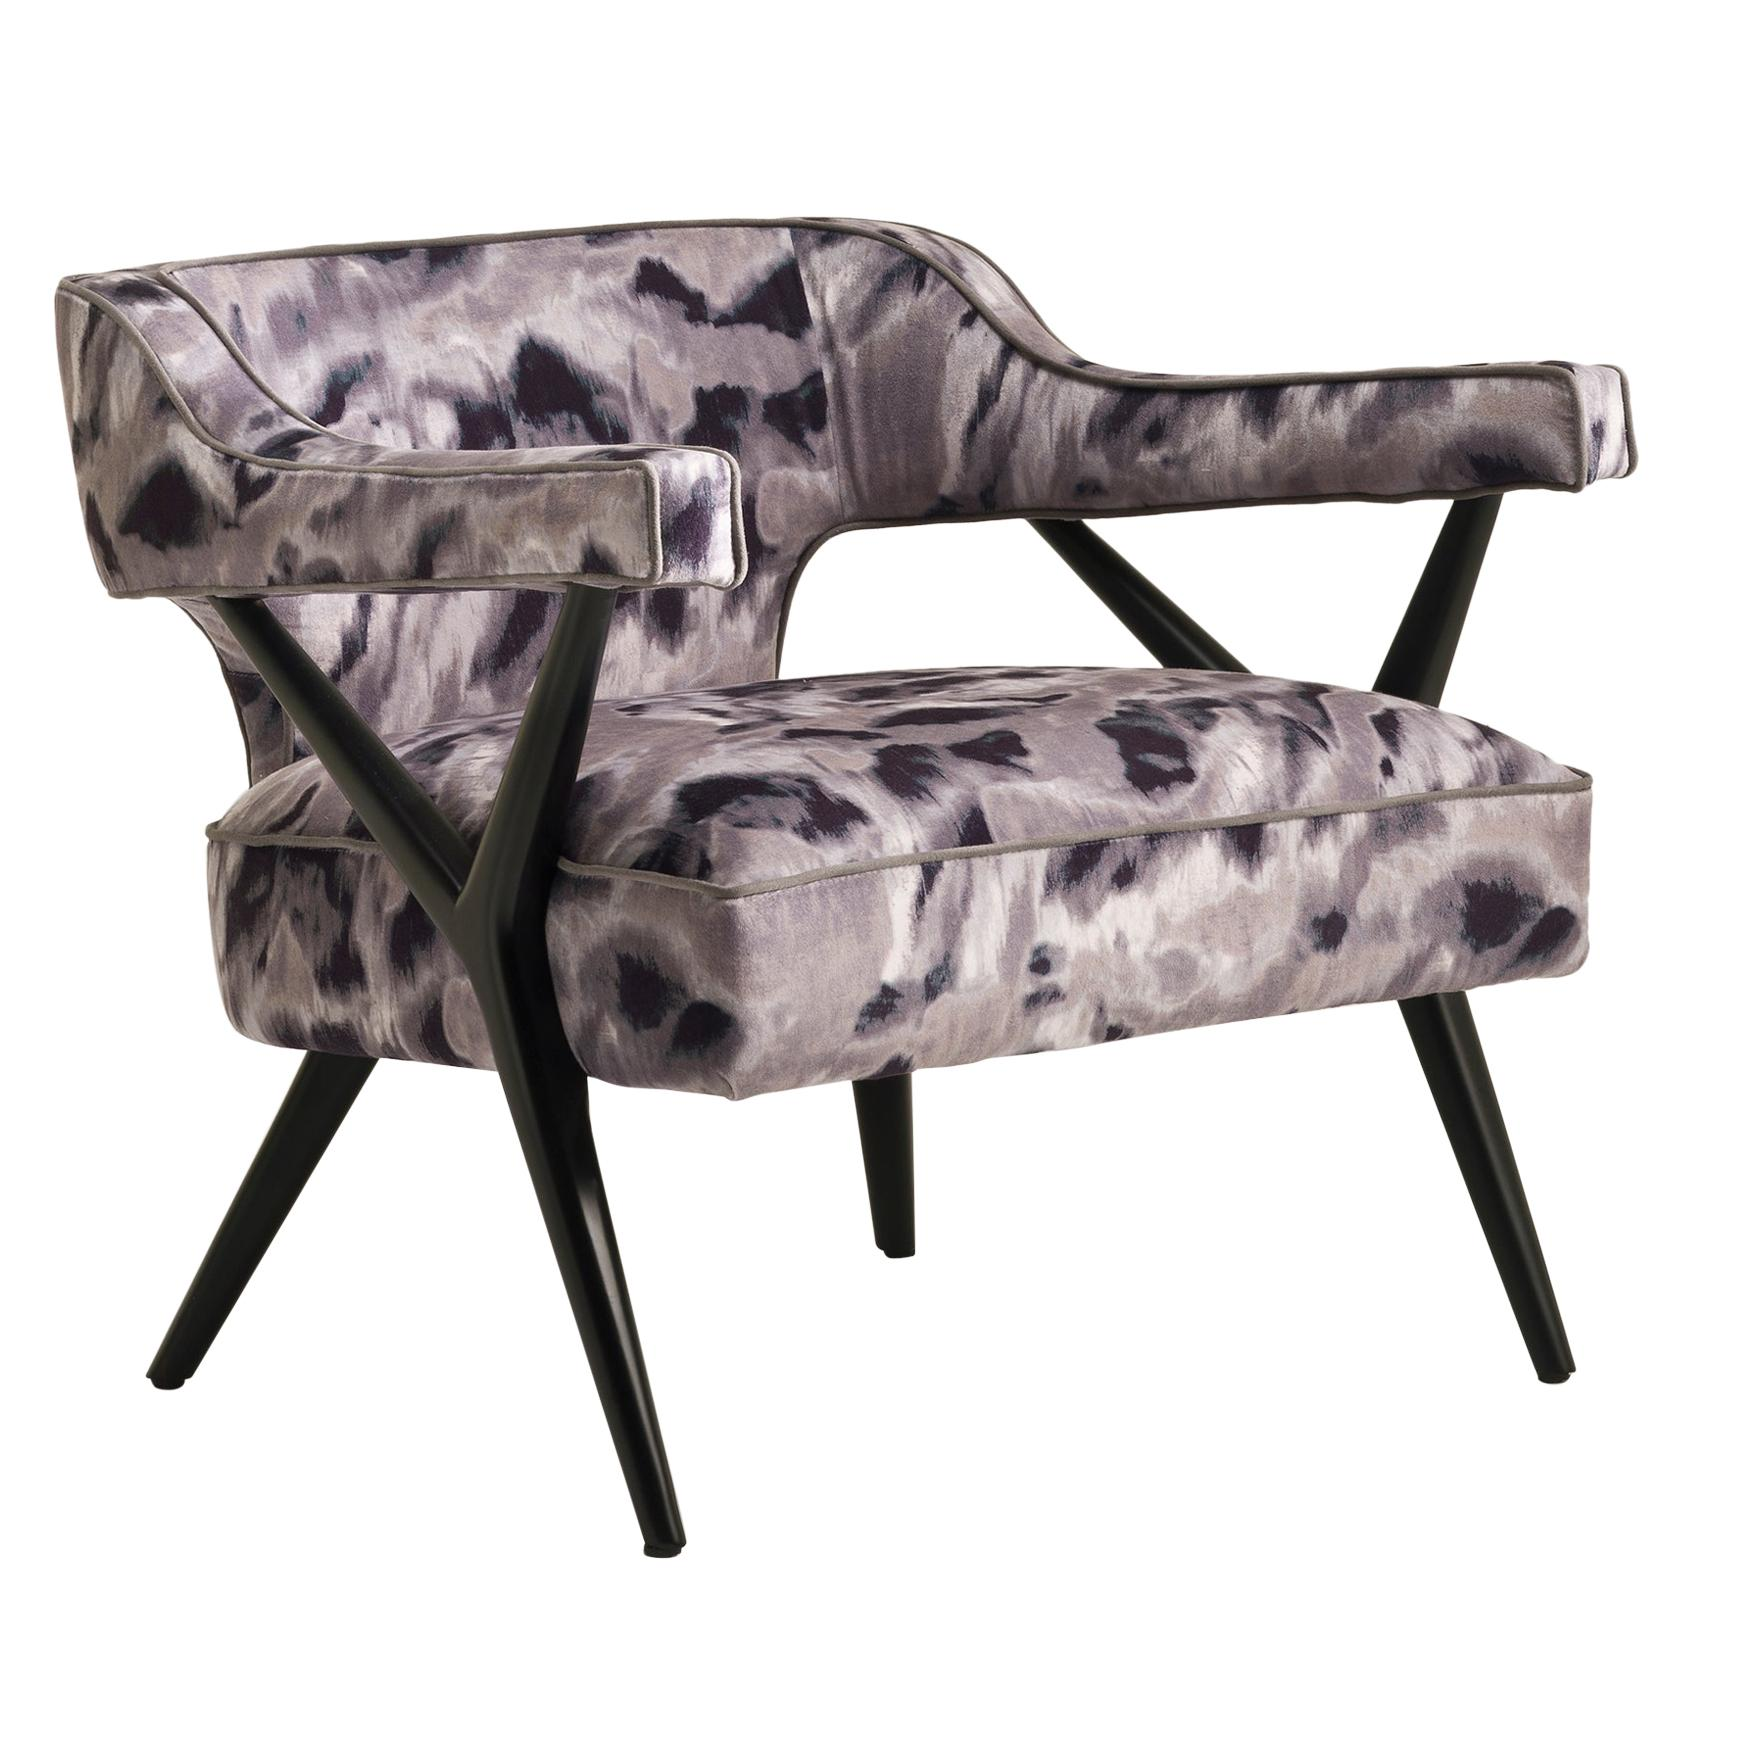 SW2 Lounge Armchair with Woven Upholstery